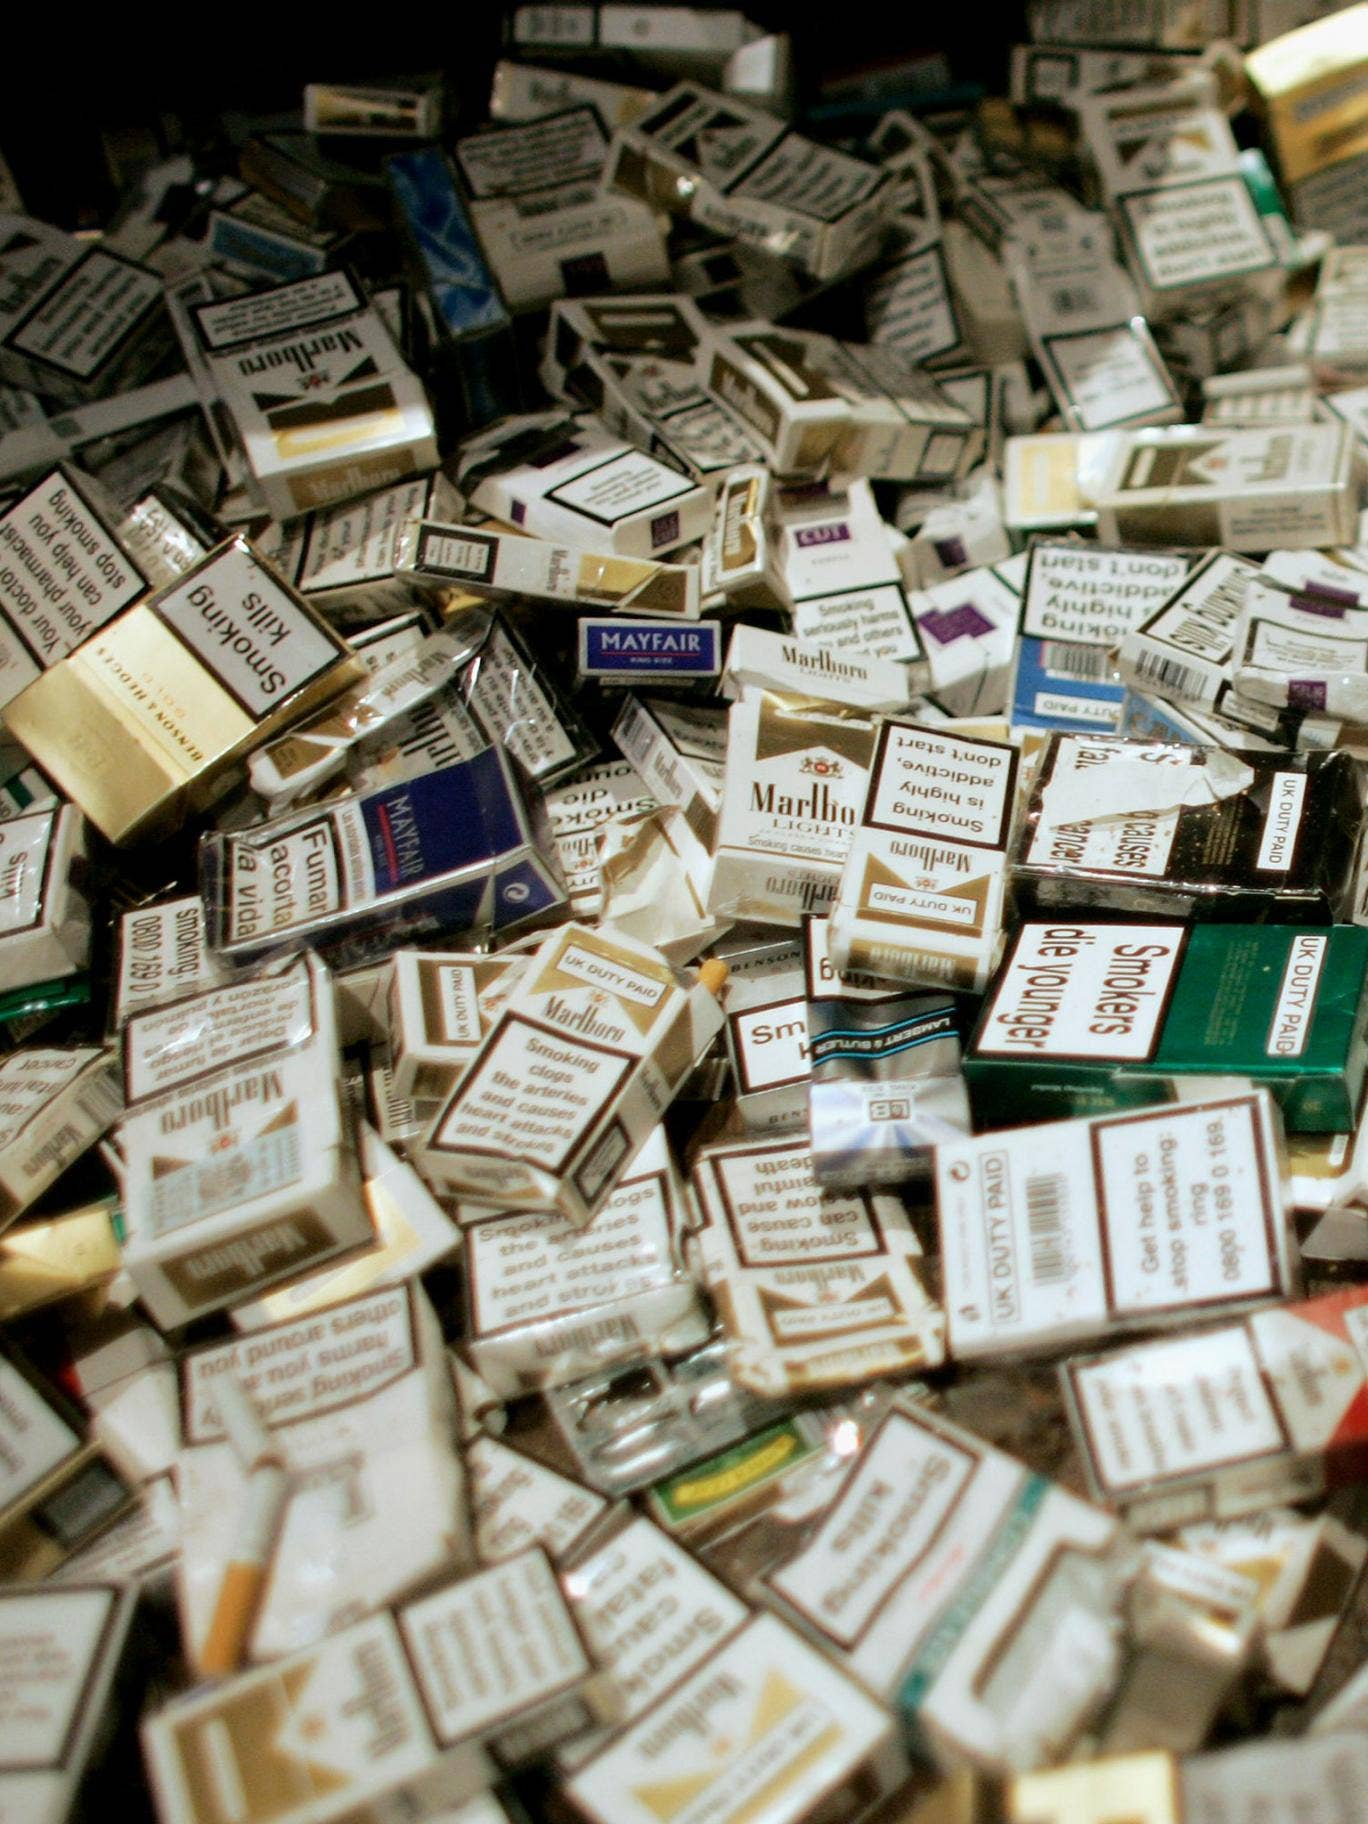 Philip Morris International, the world's largest tobacco firm, created a database tracking every British MP's opinion on plain cigarette packaging as part of its successful lobbying campaign to block the rules